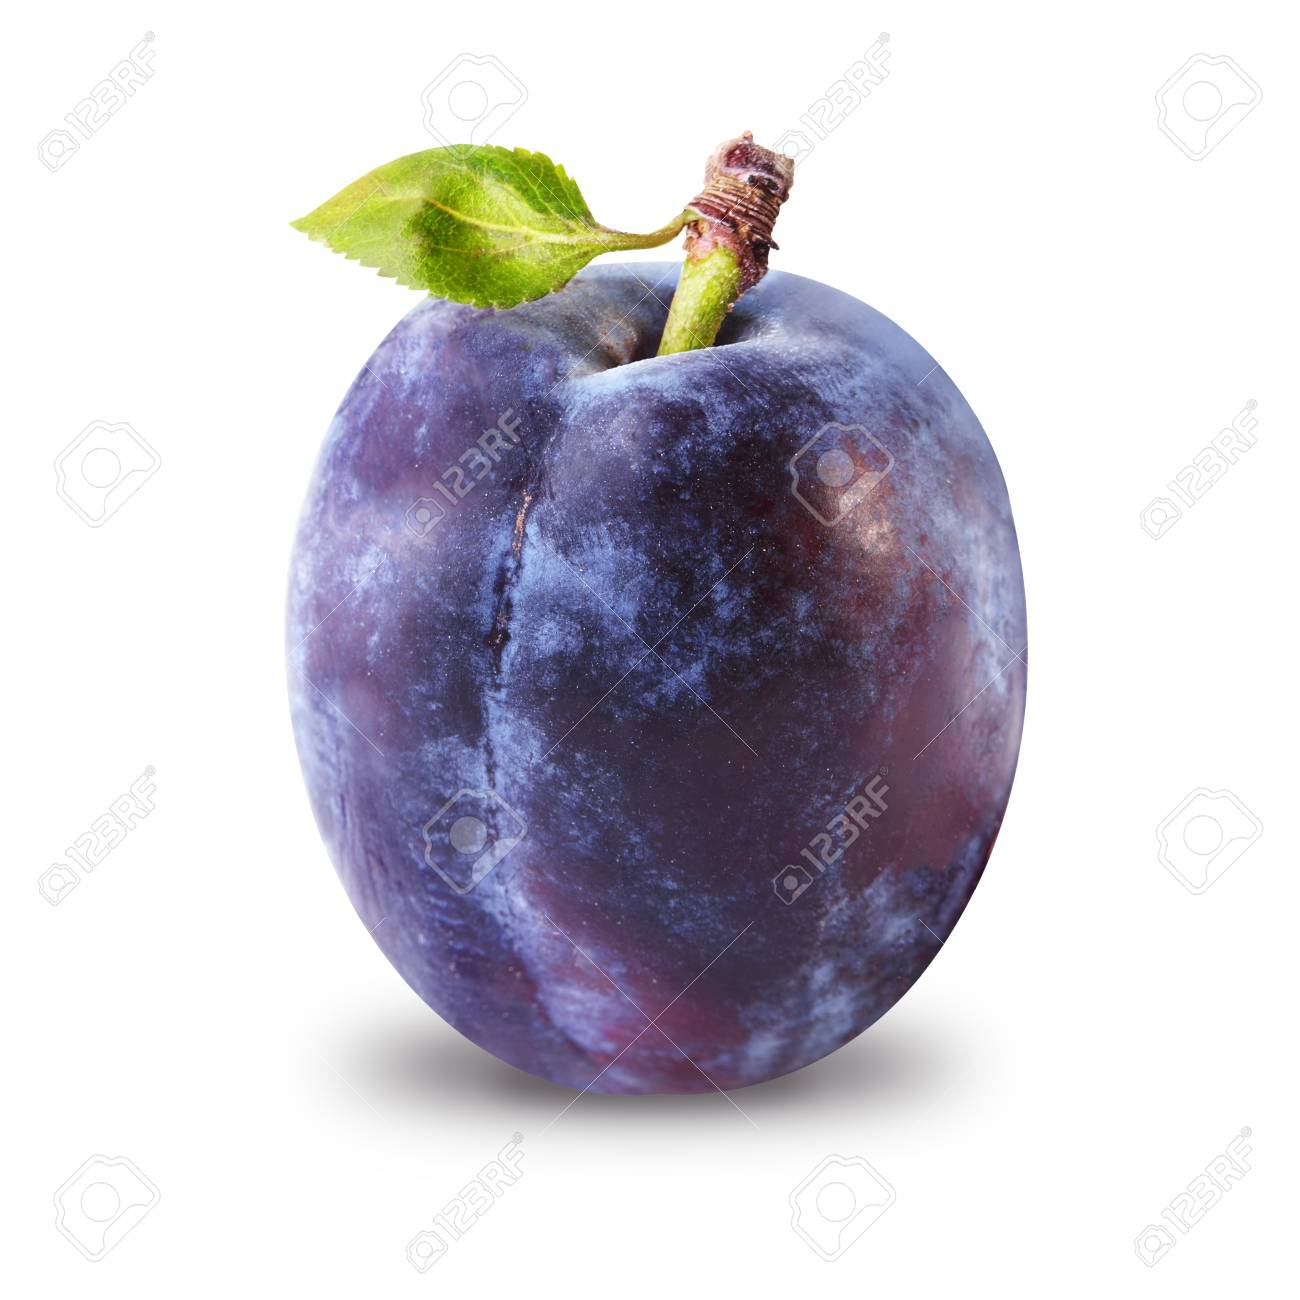 One Ripe Plum Isolated On White Background Stock Photo Picture 1300x1300